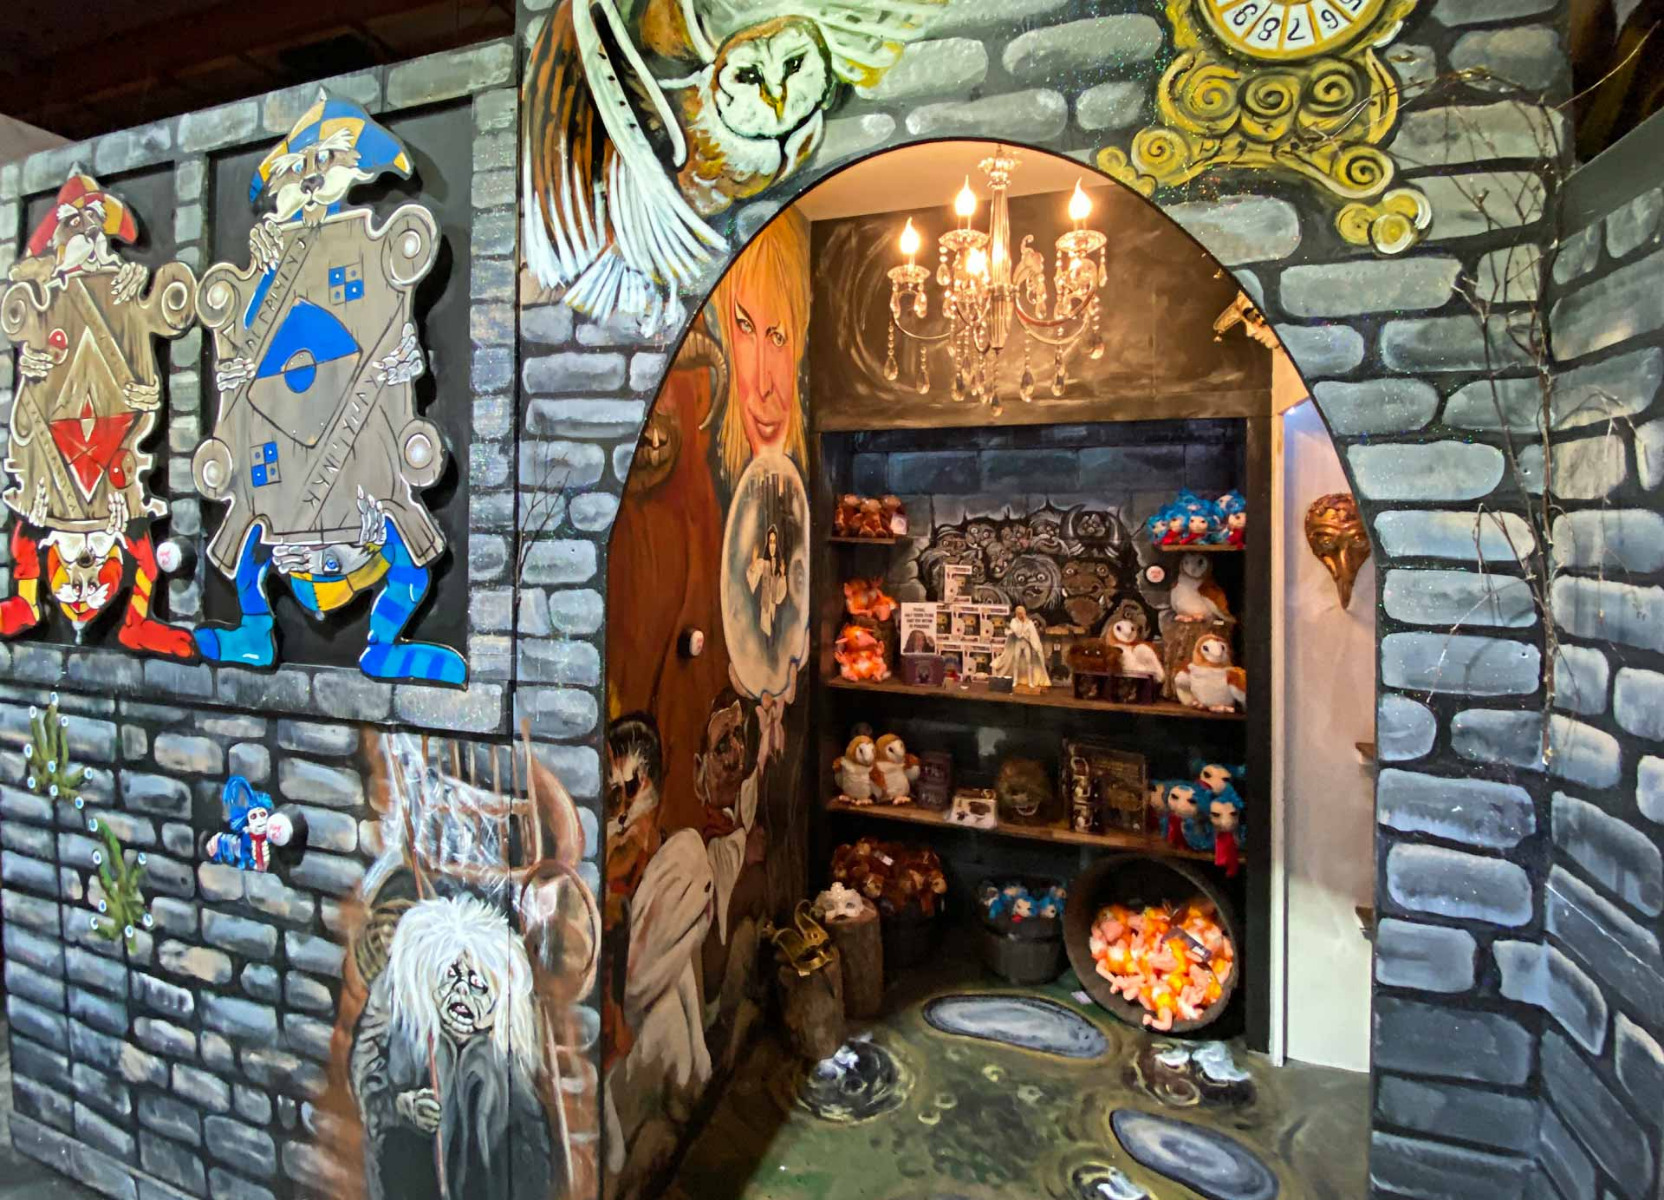 The Labyrinth Room at Little Shop of Horrors Costumery 6/1 Watt Rd Mornington Victoria Australia